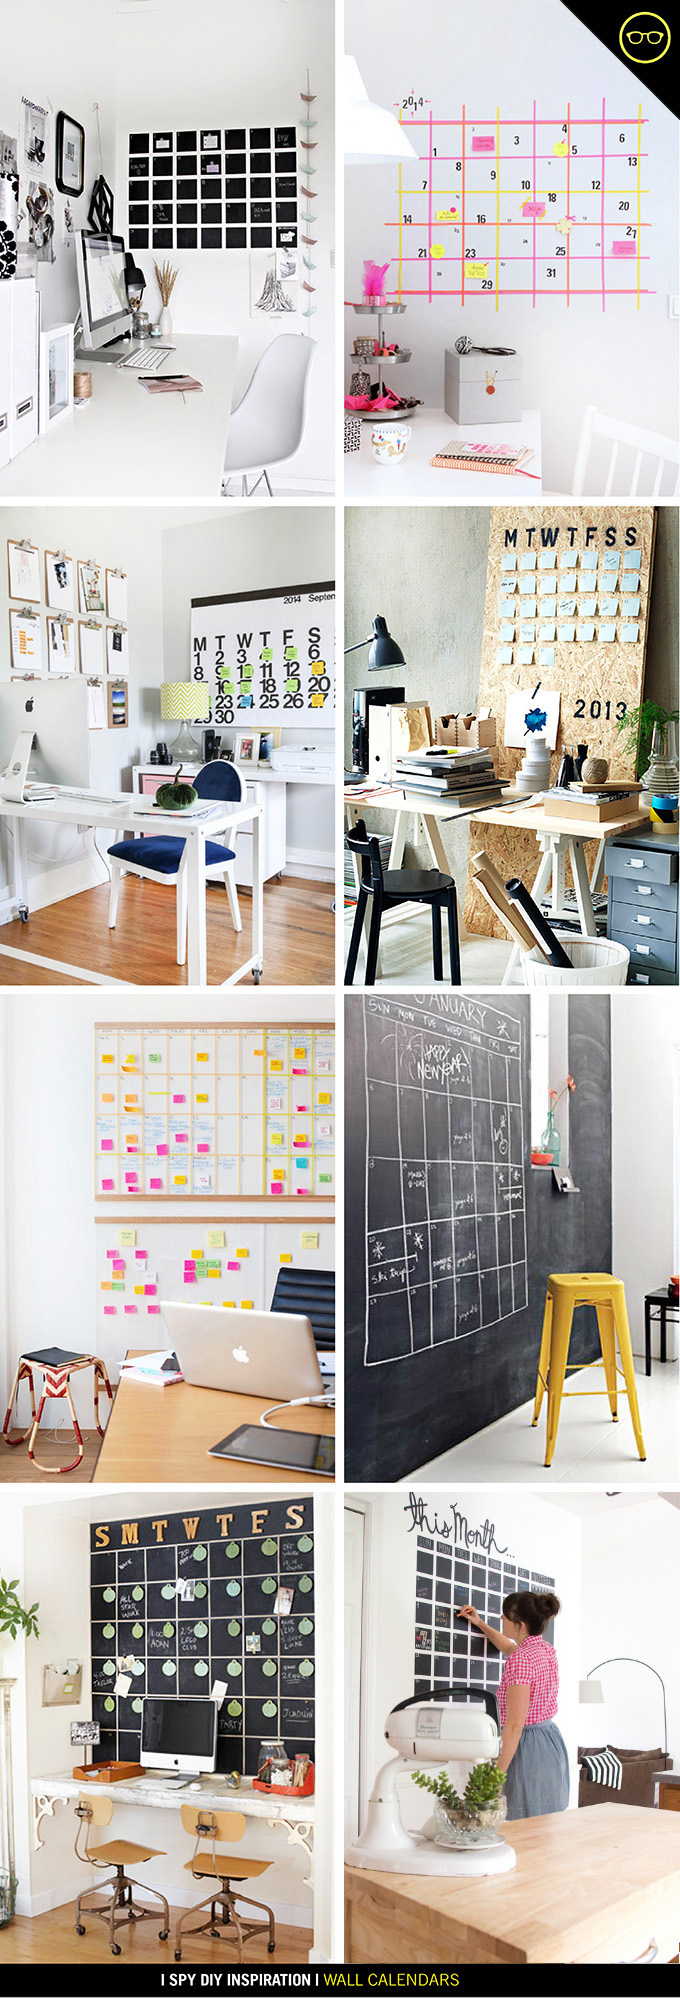 Diy Large Wall Calendar : Diy inspiration wall calendar i spy lovin